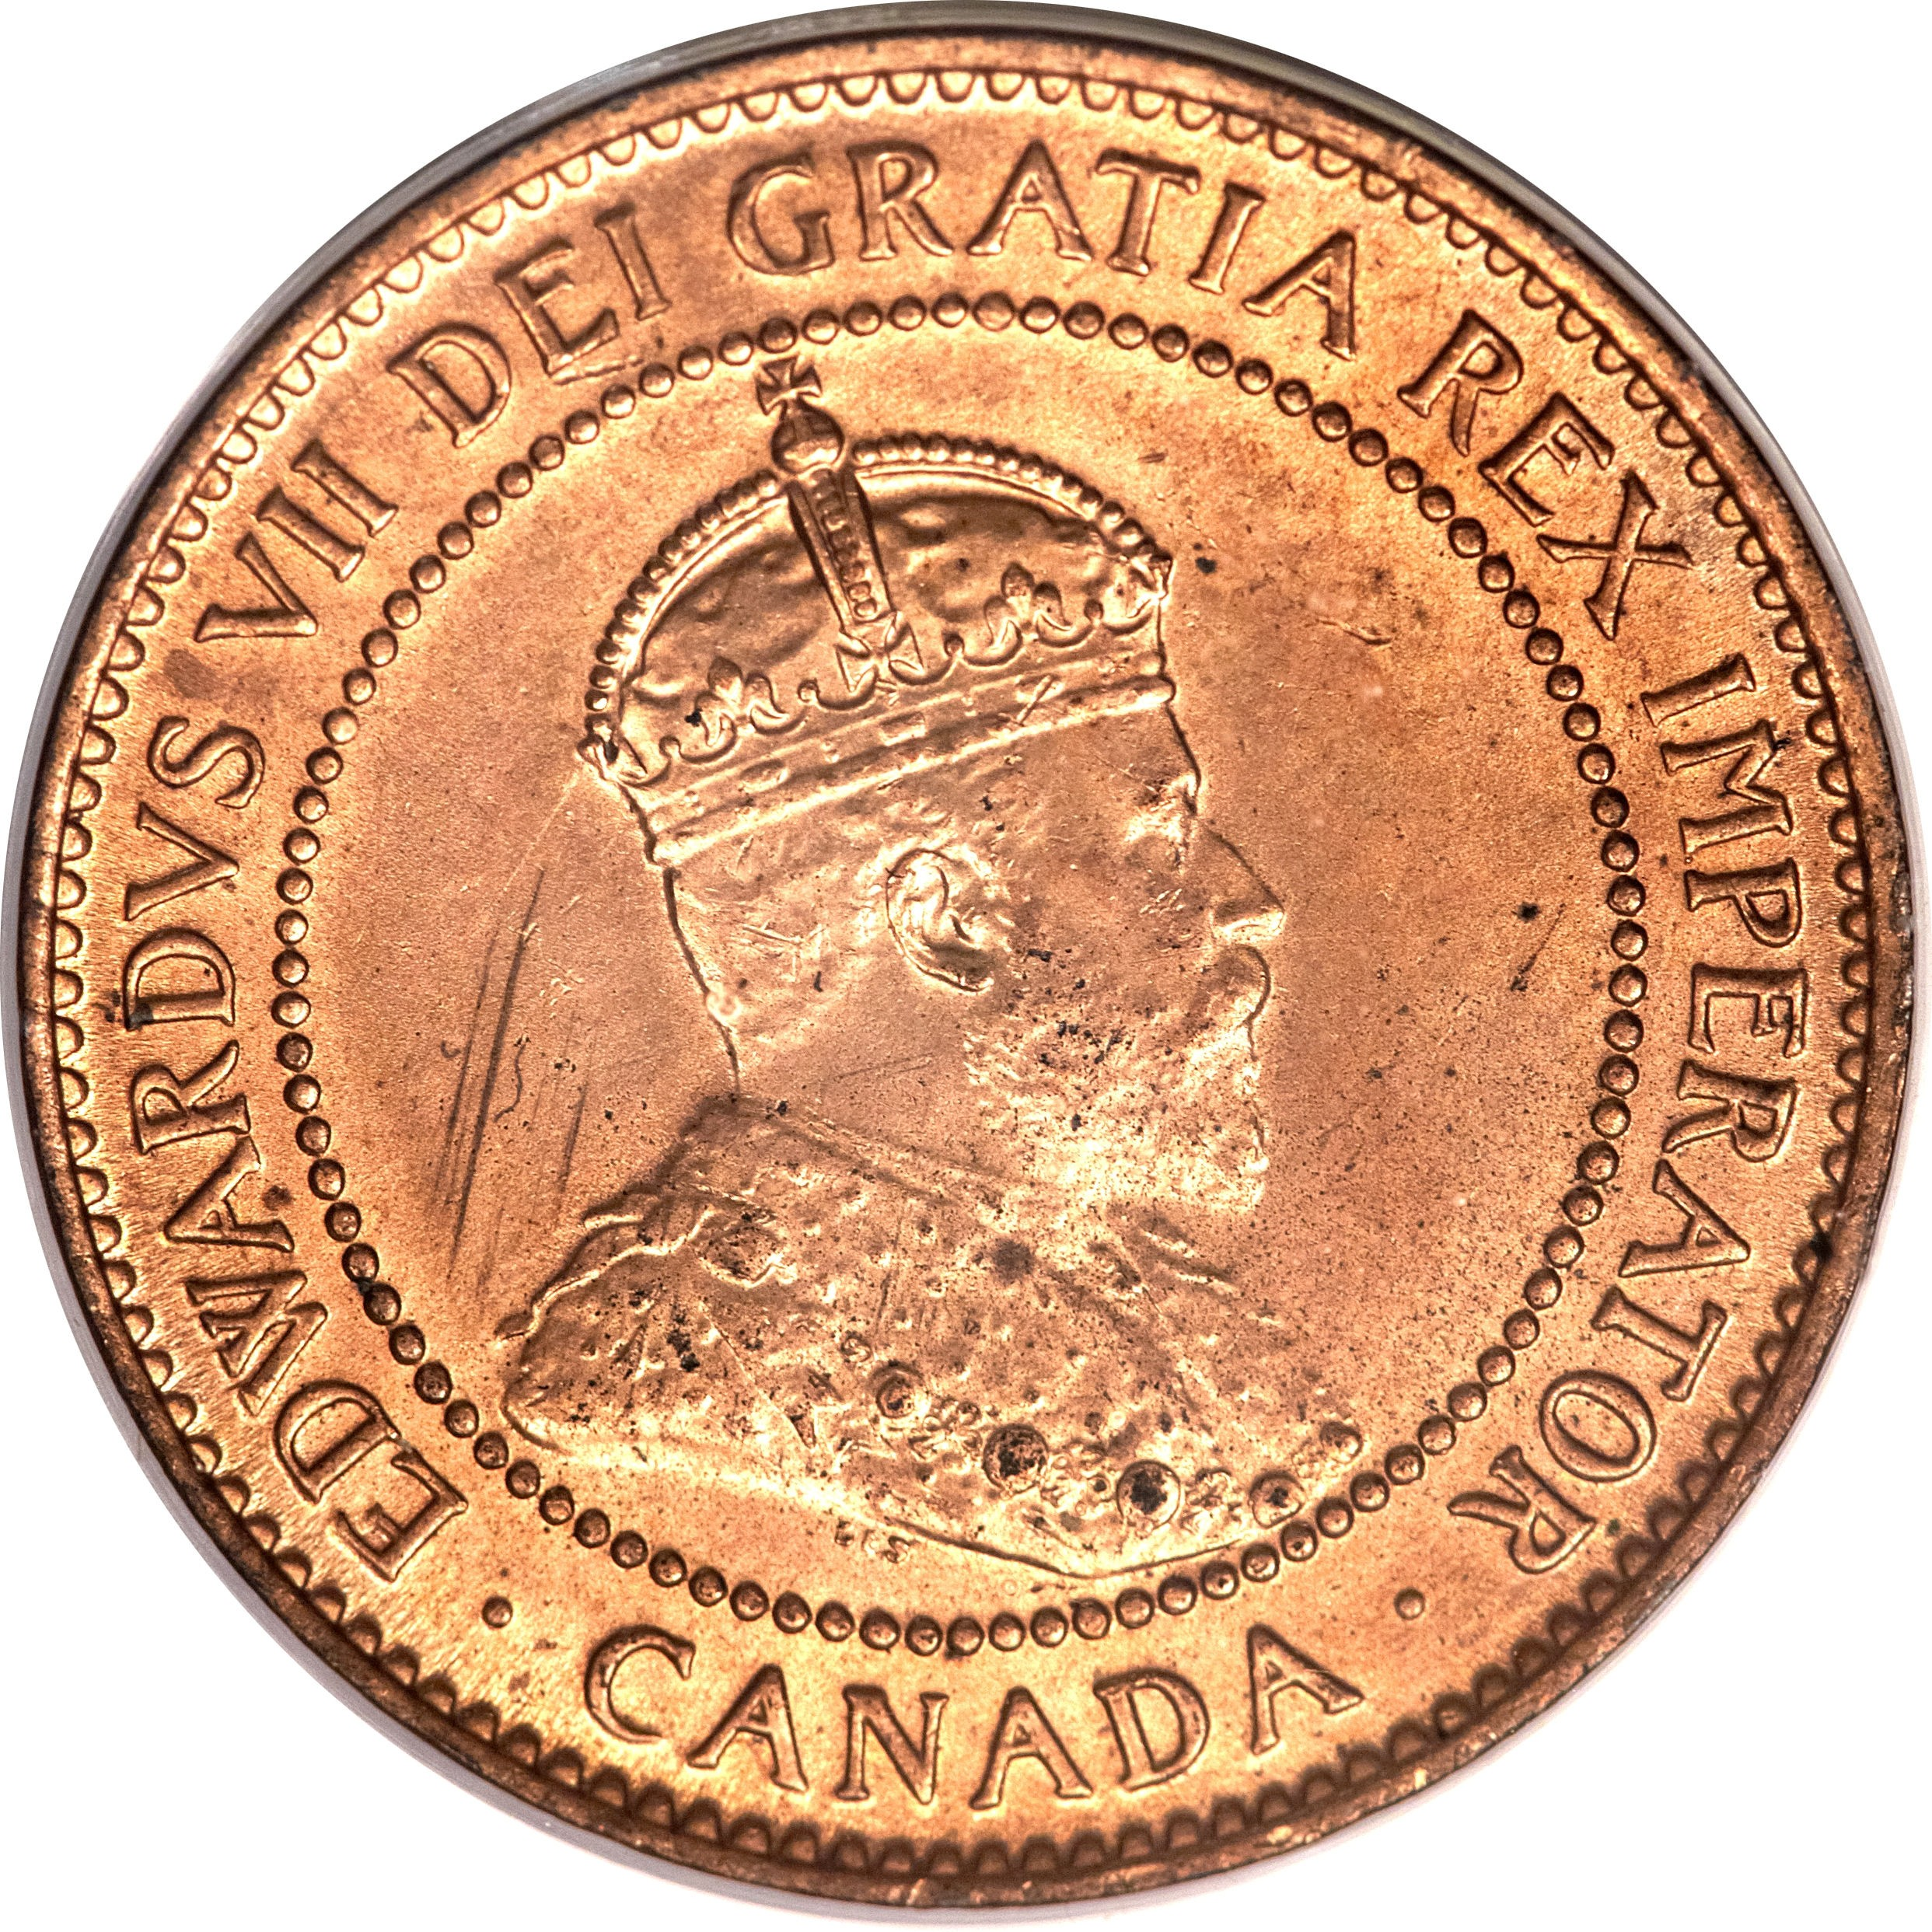 caobbb_Canada 1 Cent (1902-1910 Edward VII) - Foreign Currency